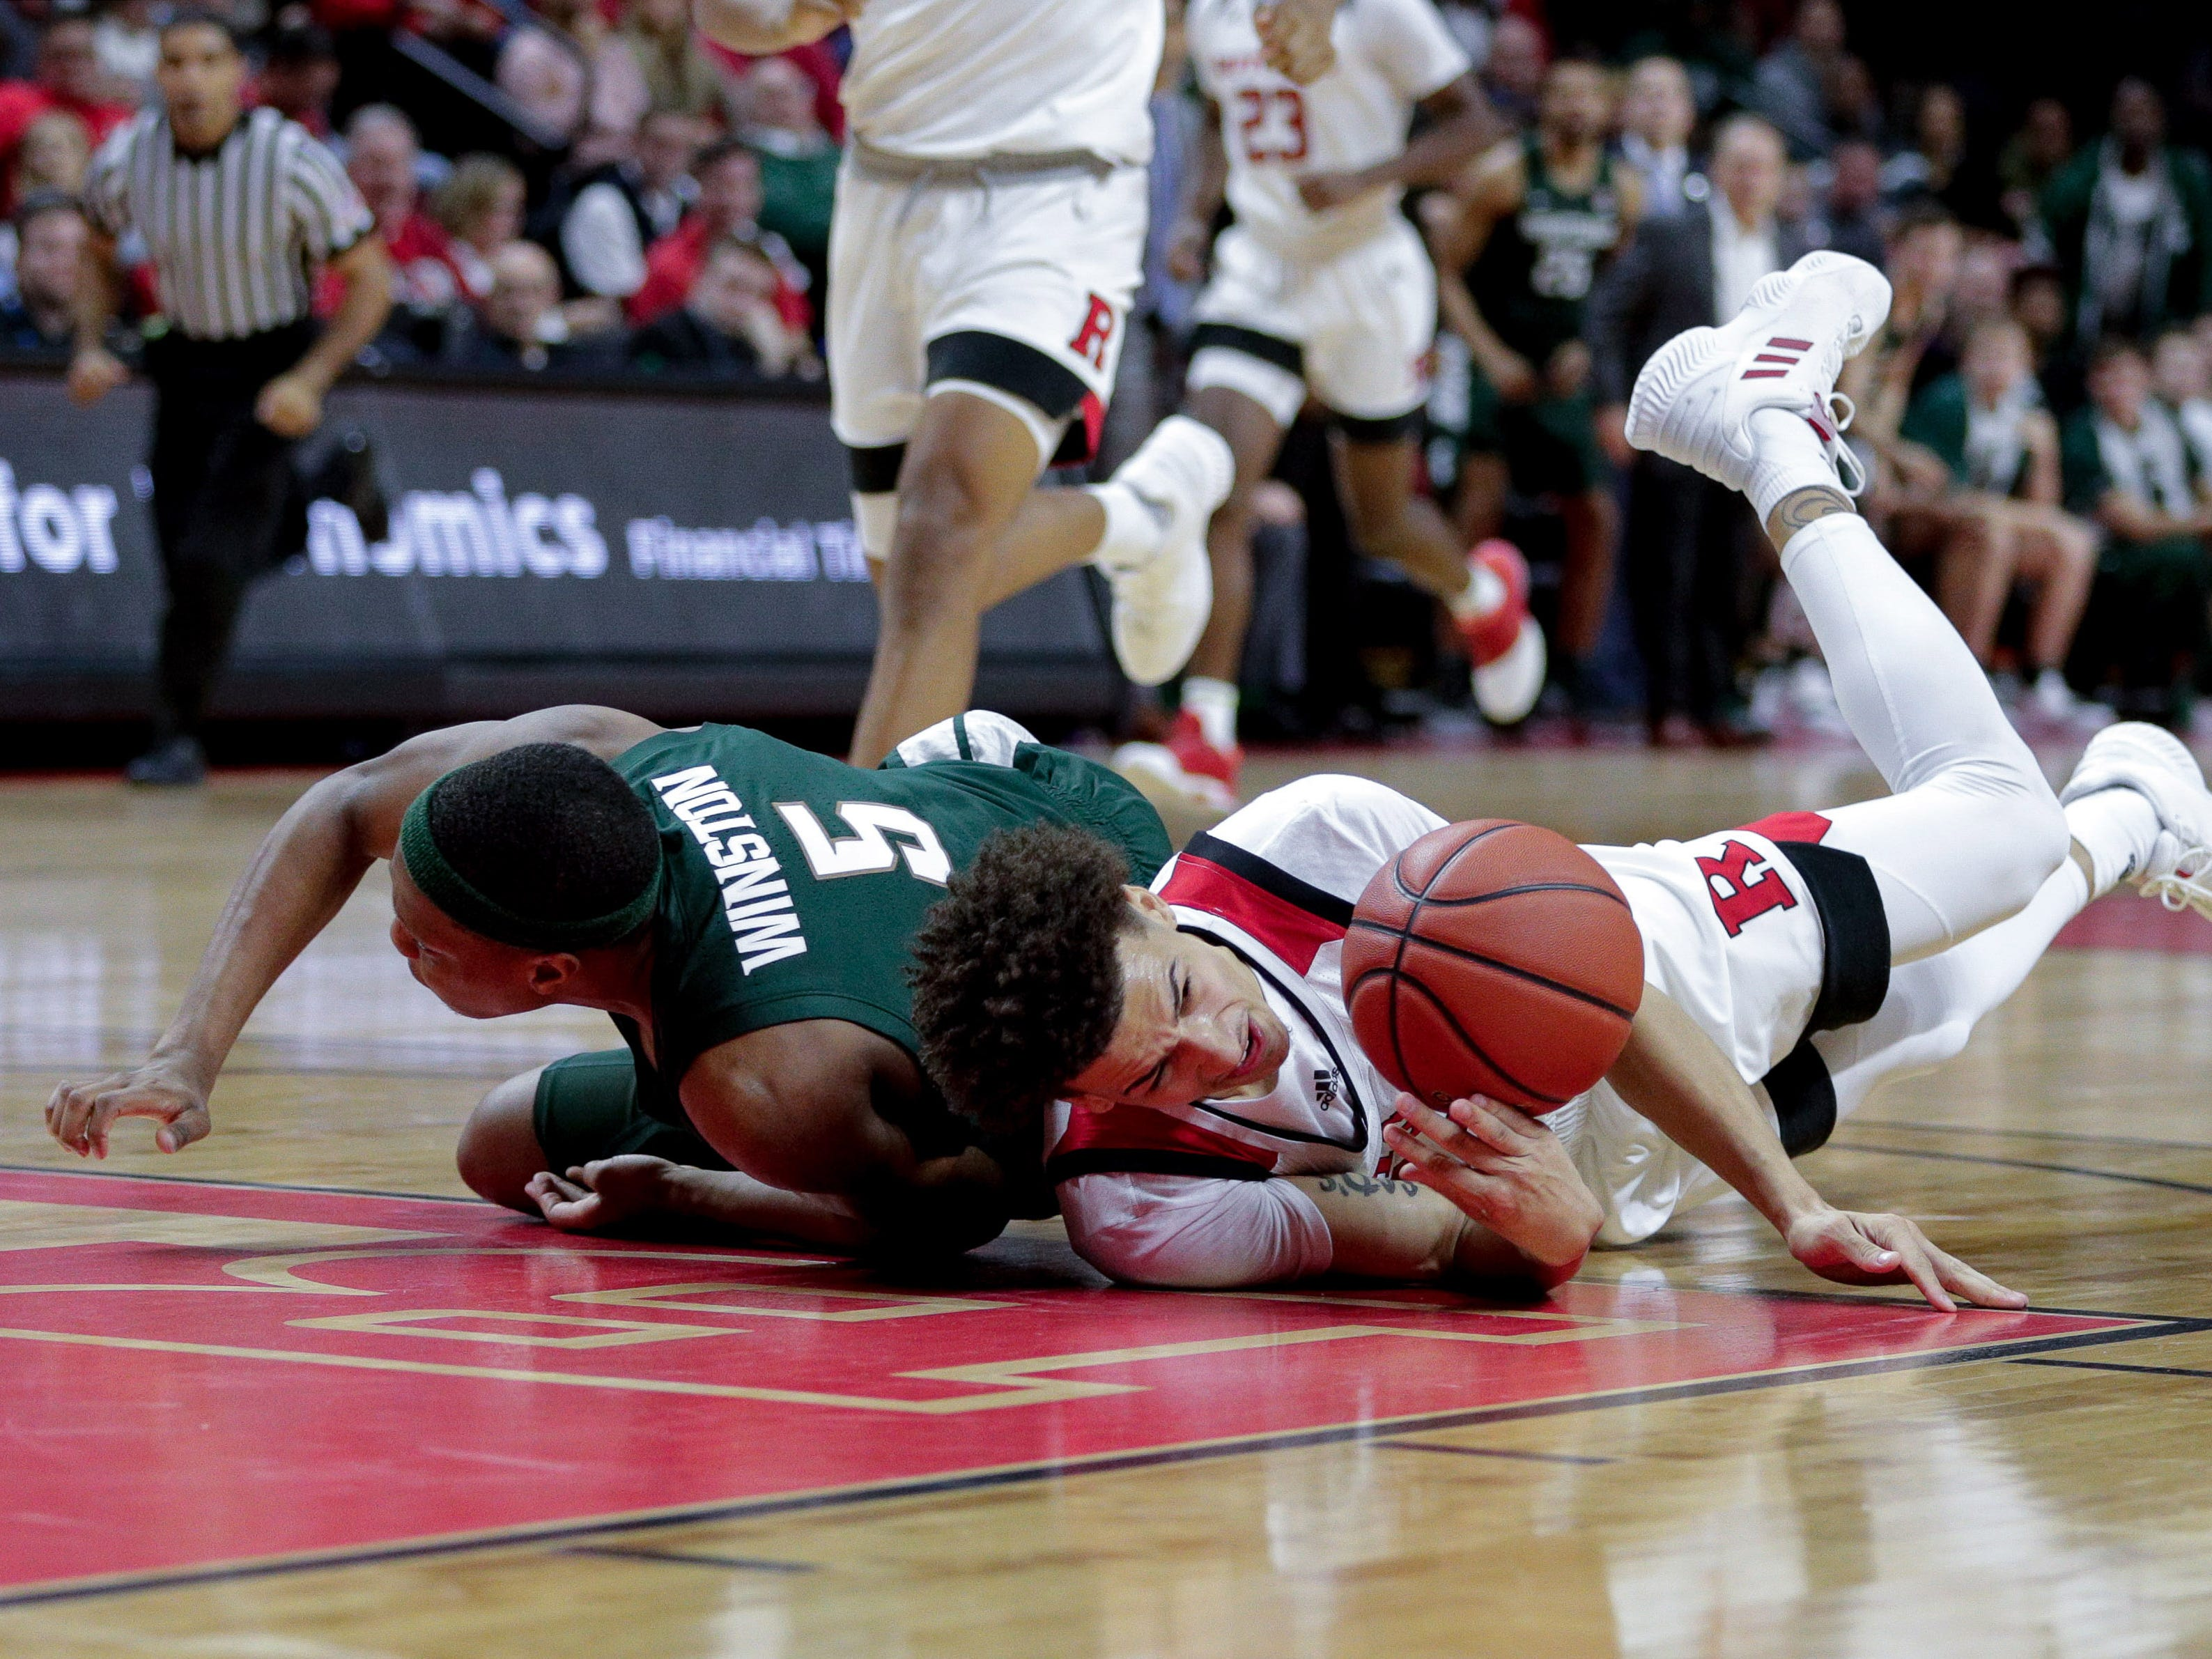 Michigan State Spartans guard Cassius Winston (5) battles for the ball against Rutgers Scarlet Knights guard Caleb McConnell (22) during the first half at Rutgers Athletic Center (RAC).